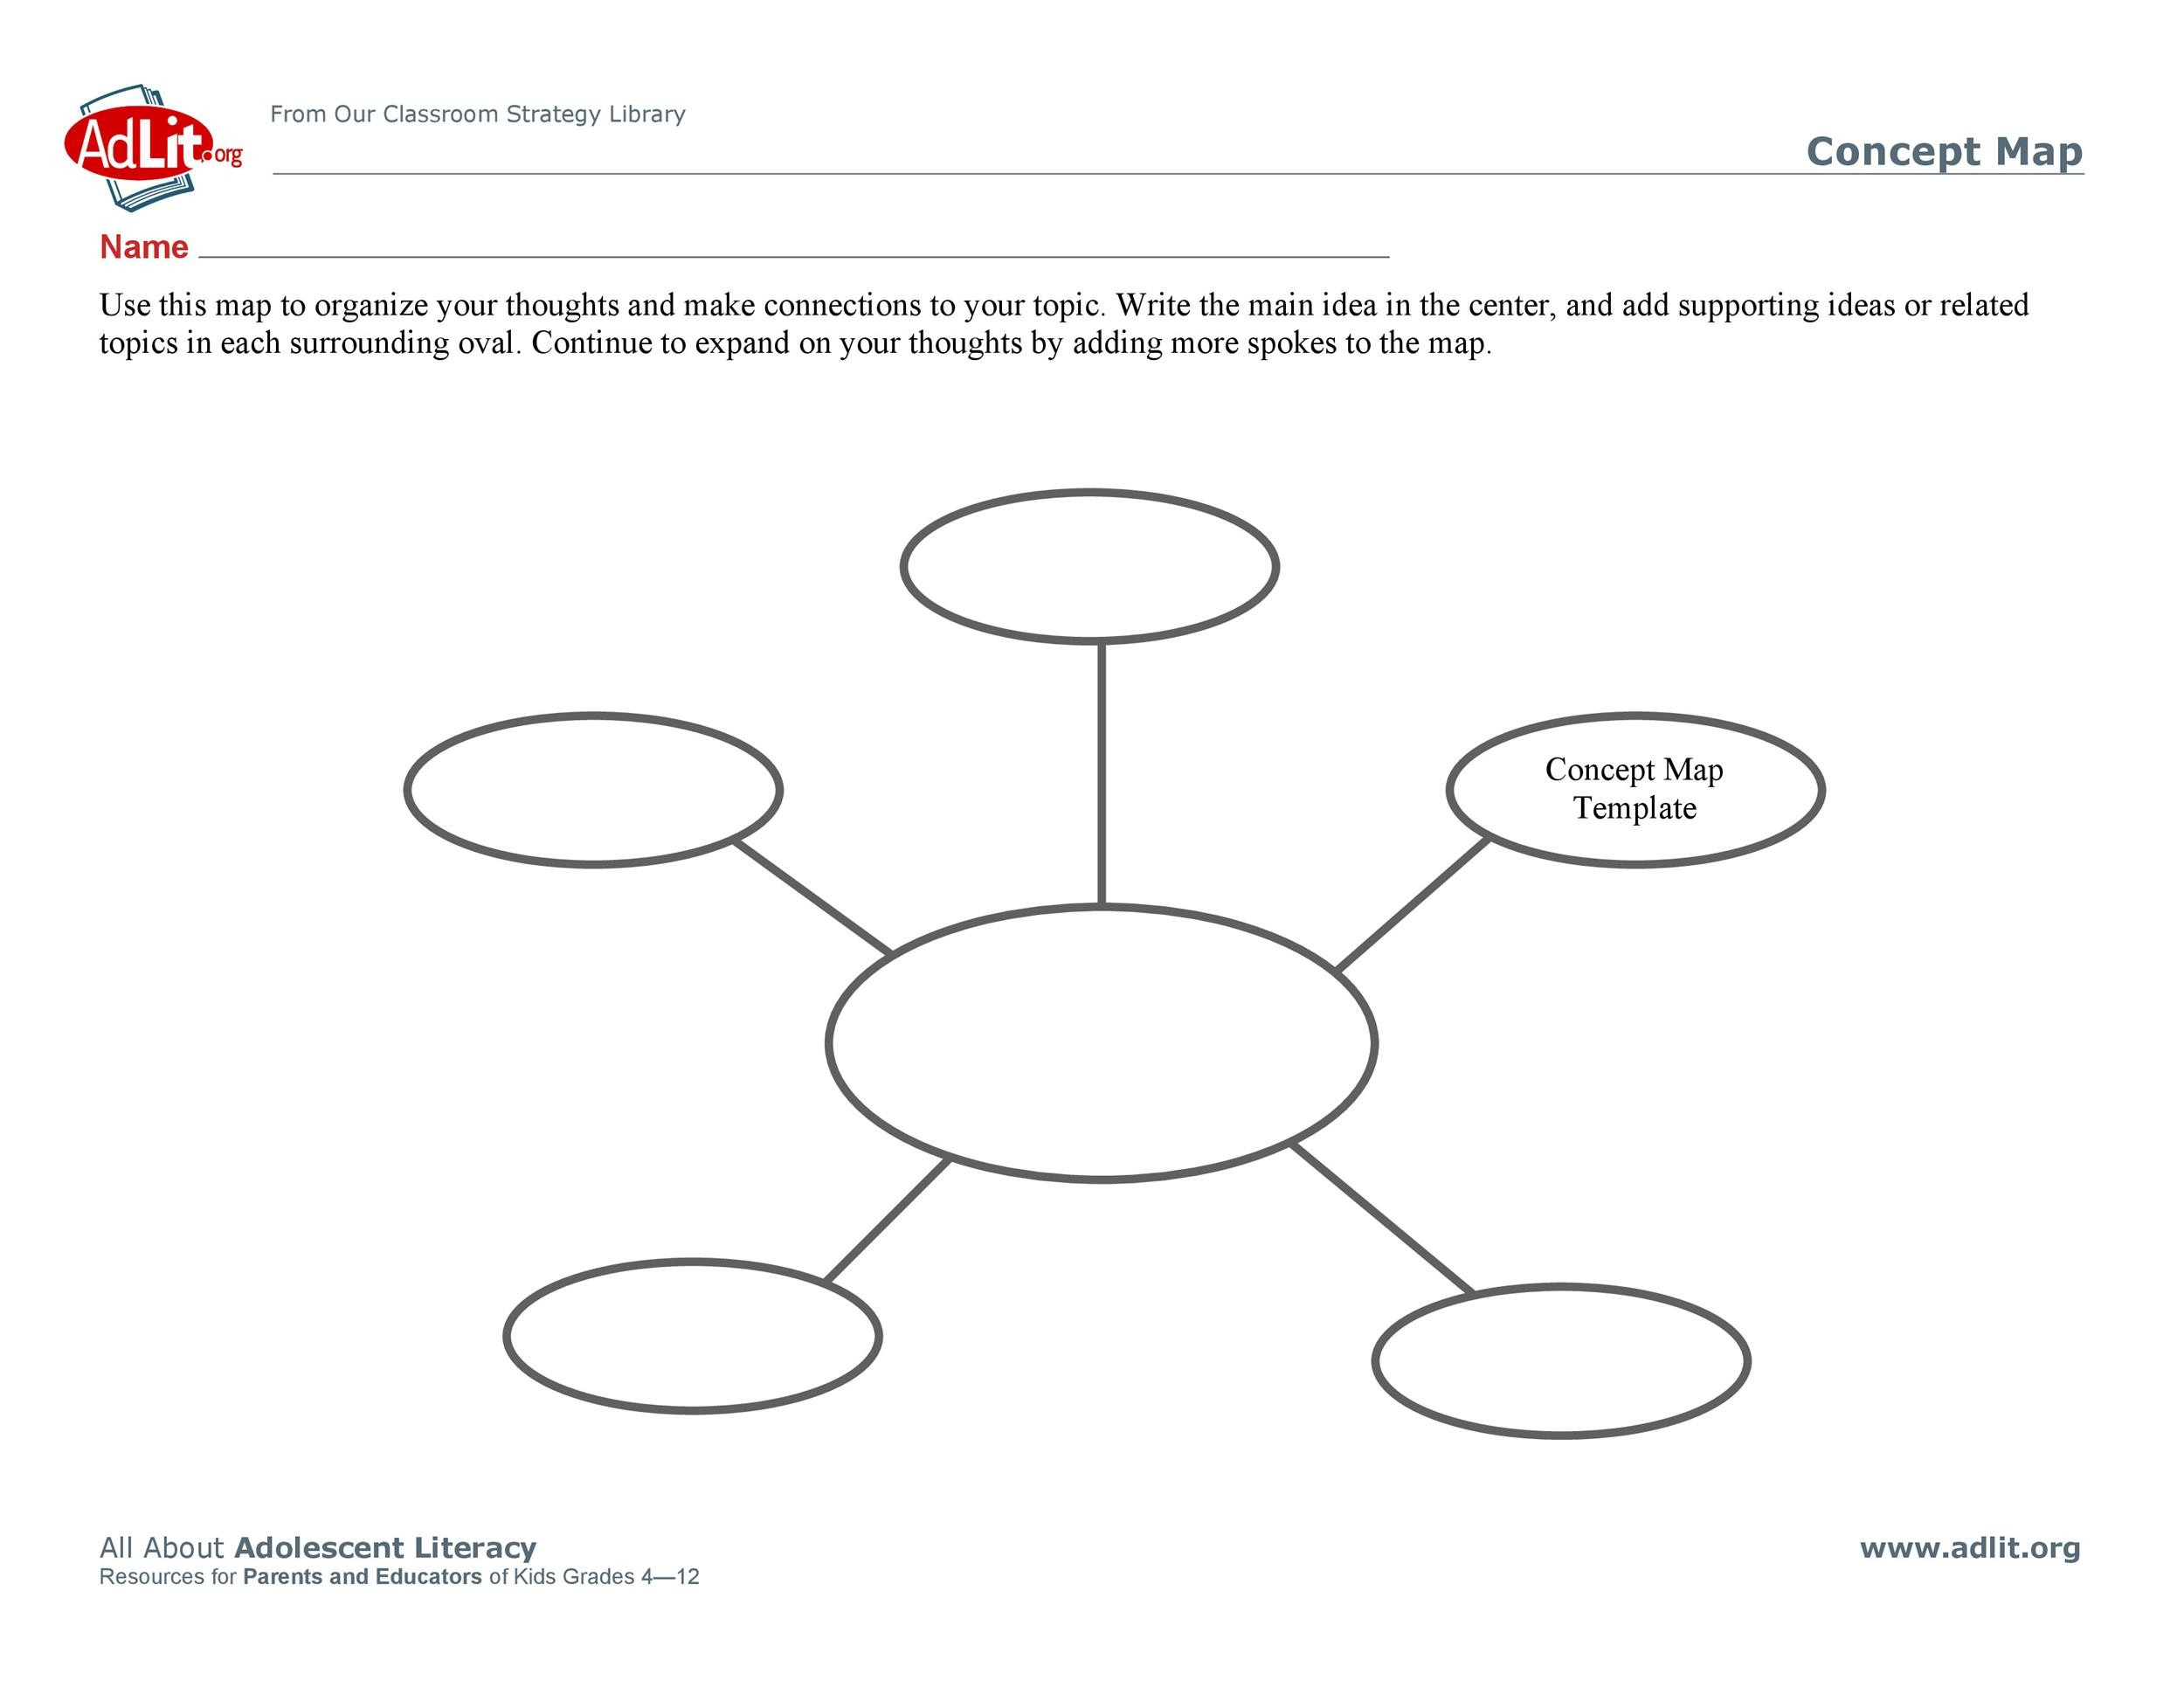 40+ concept map templates [hierarchical, spider, flowchart], Powerpoint templates